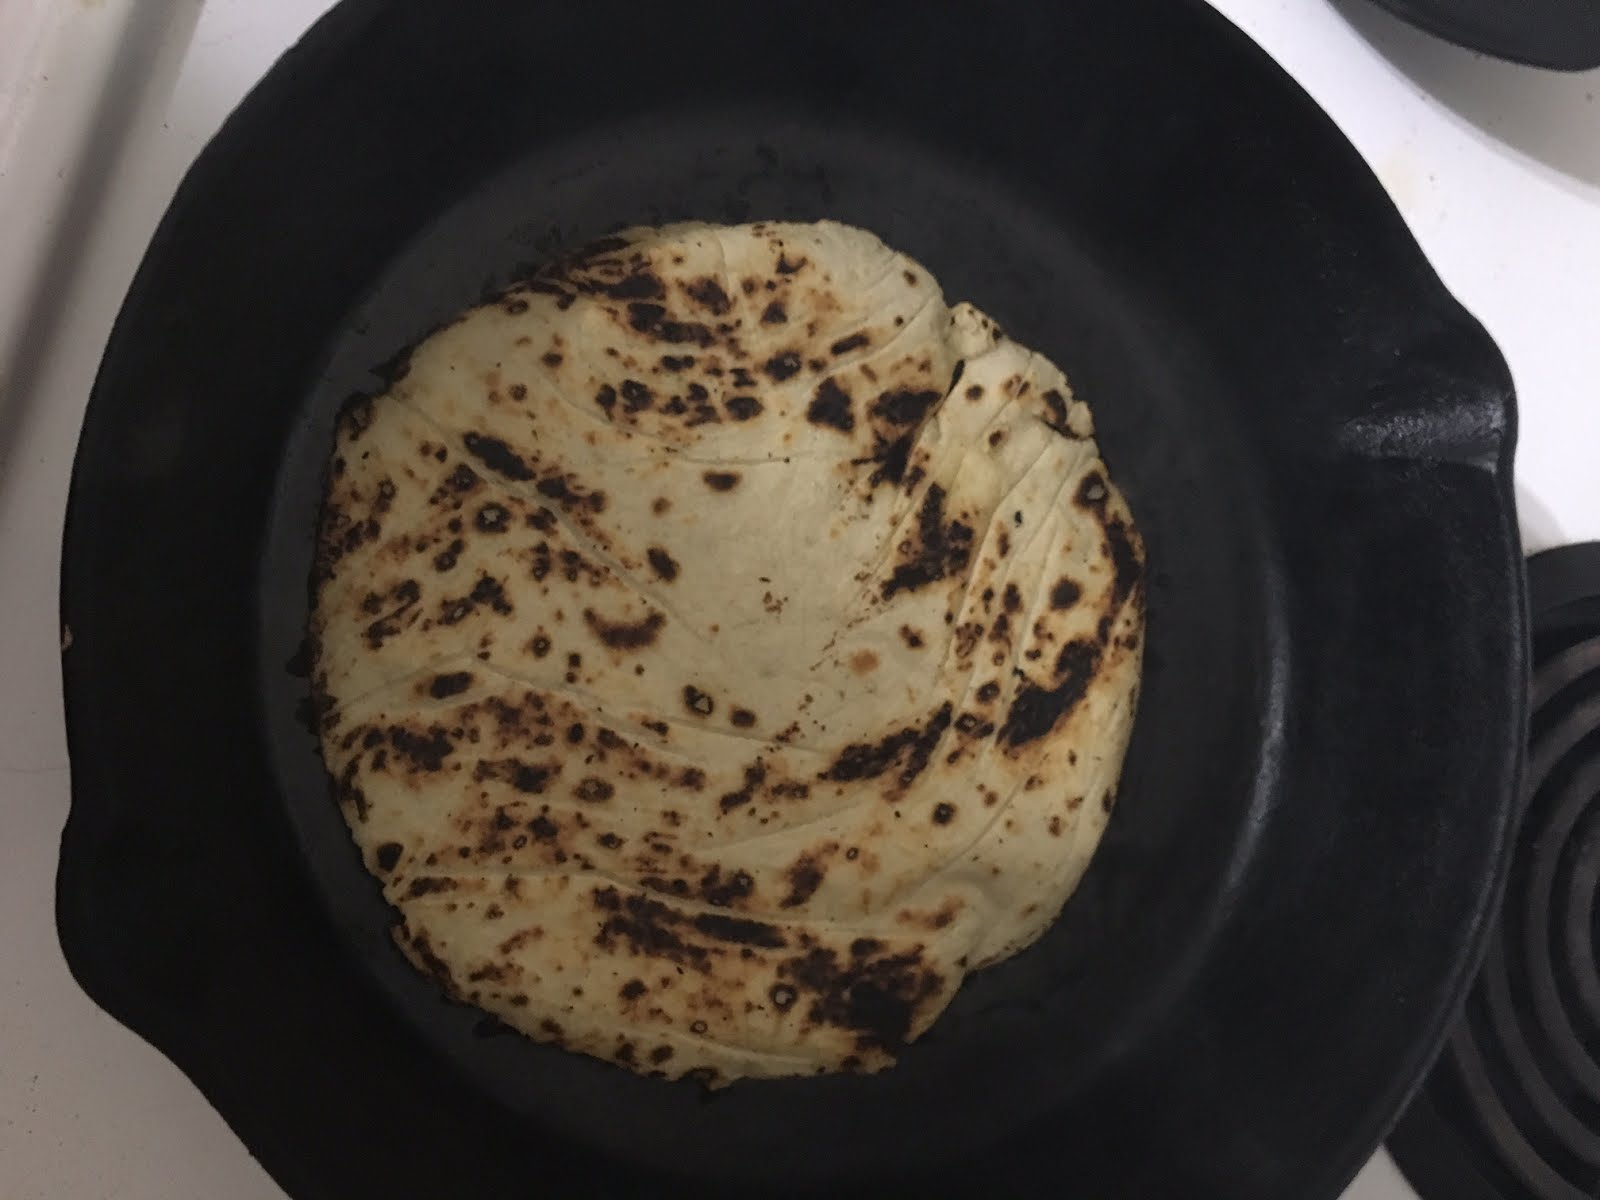 Finally It's a tortilla! you want those beautiful spots on them. Sadly only the first side will have them that perfect.